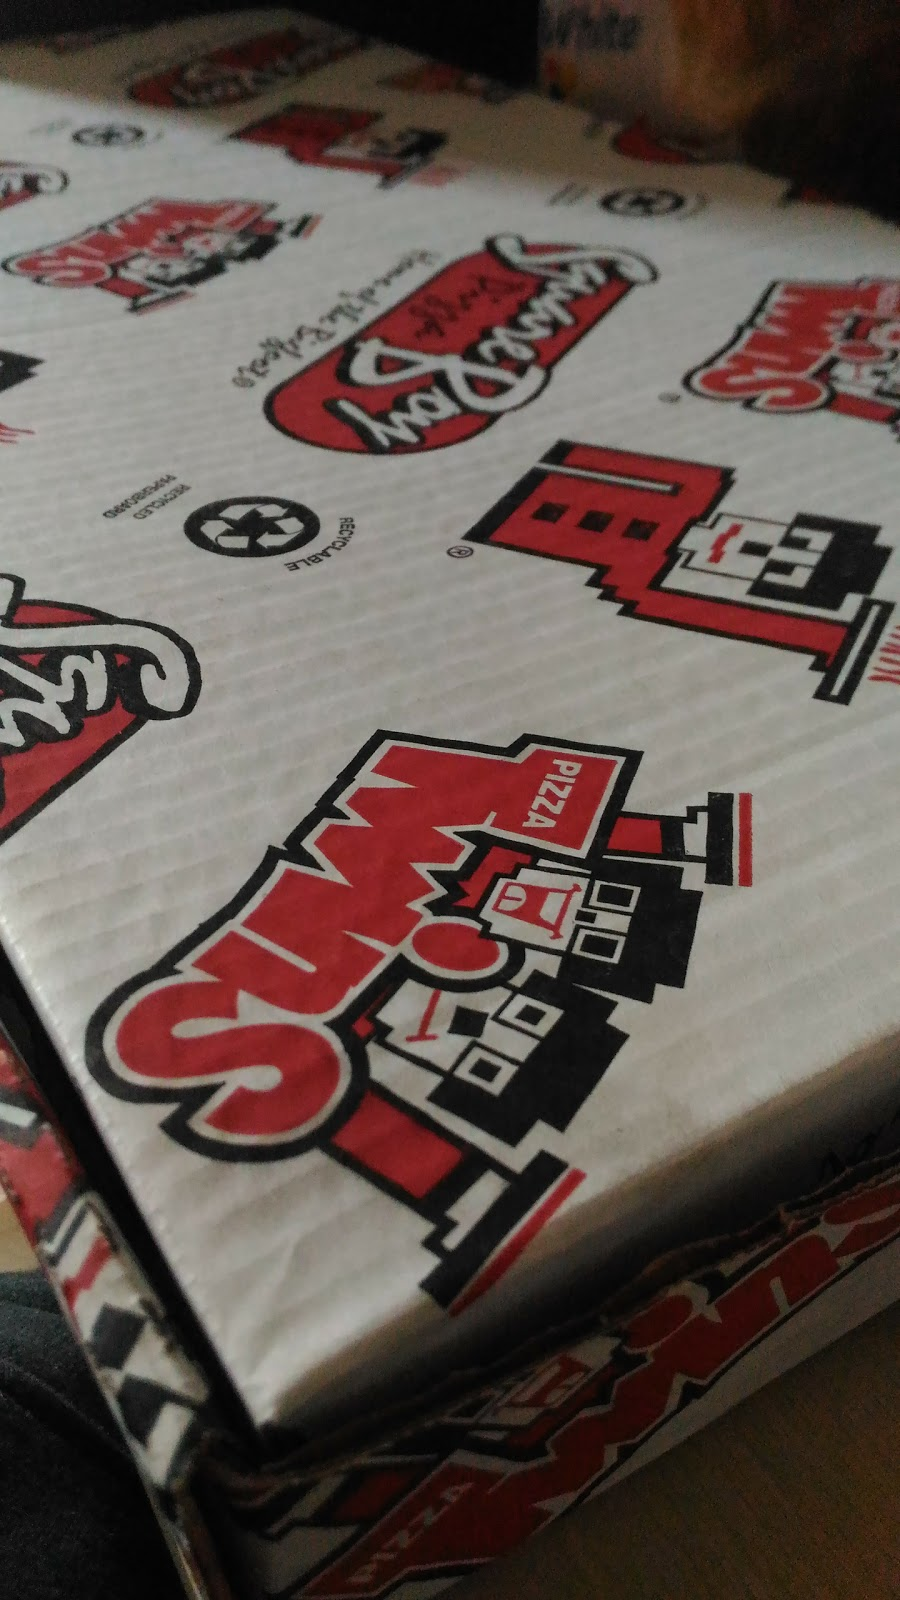 Square Boy Pizza Subs & Wings | restaurant | 355 Wentworth St W, Oshawa, ON L1J 1N6, Canada | 9057210000 OR +1 905-721-0000